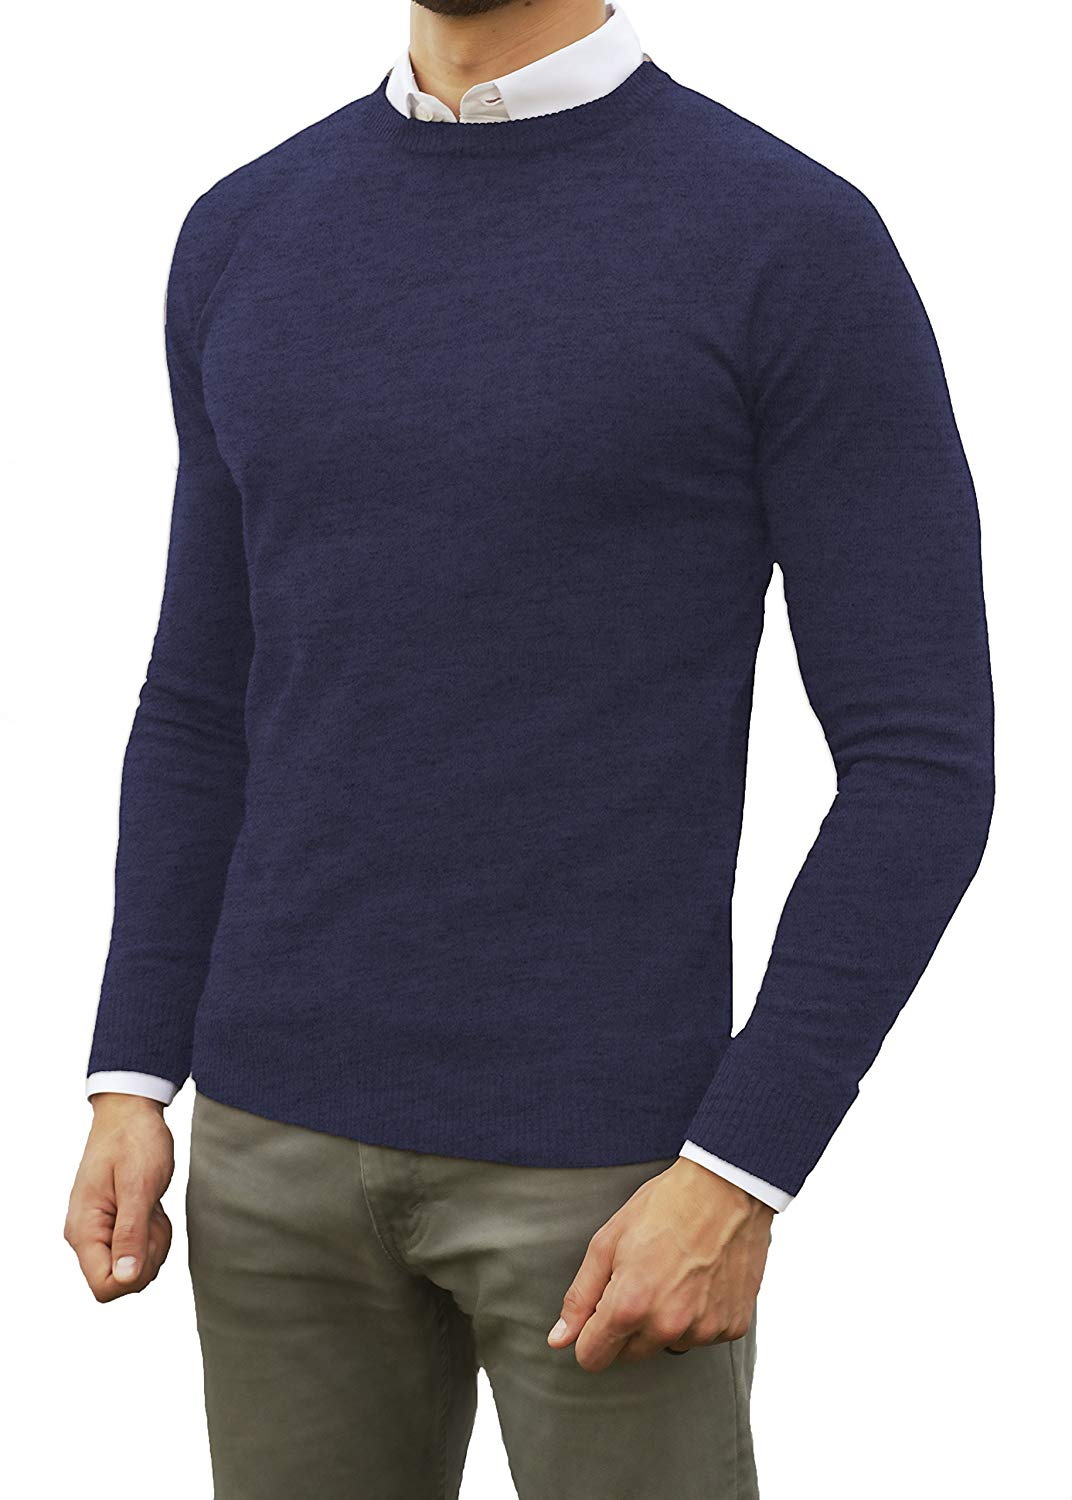 Perfect Slim Fit Lightweight Soft Fitted Crew Neck Pullover Sweater